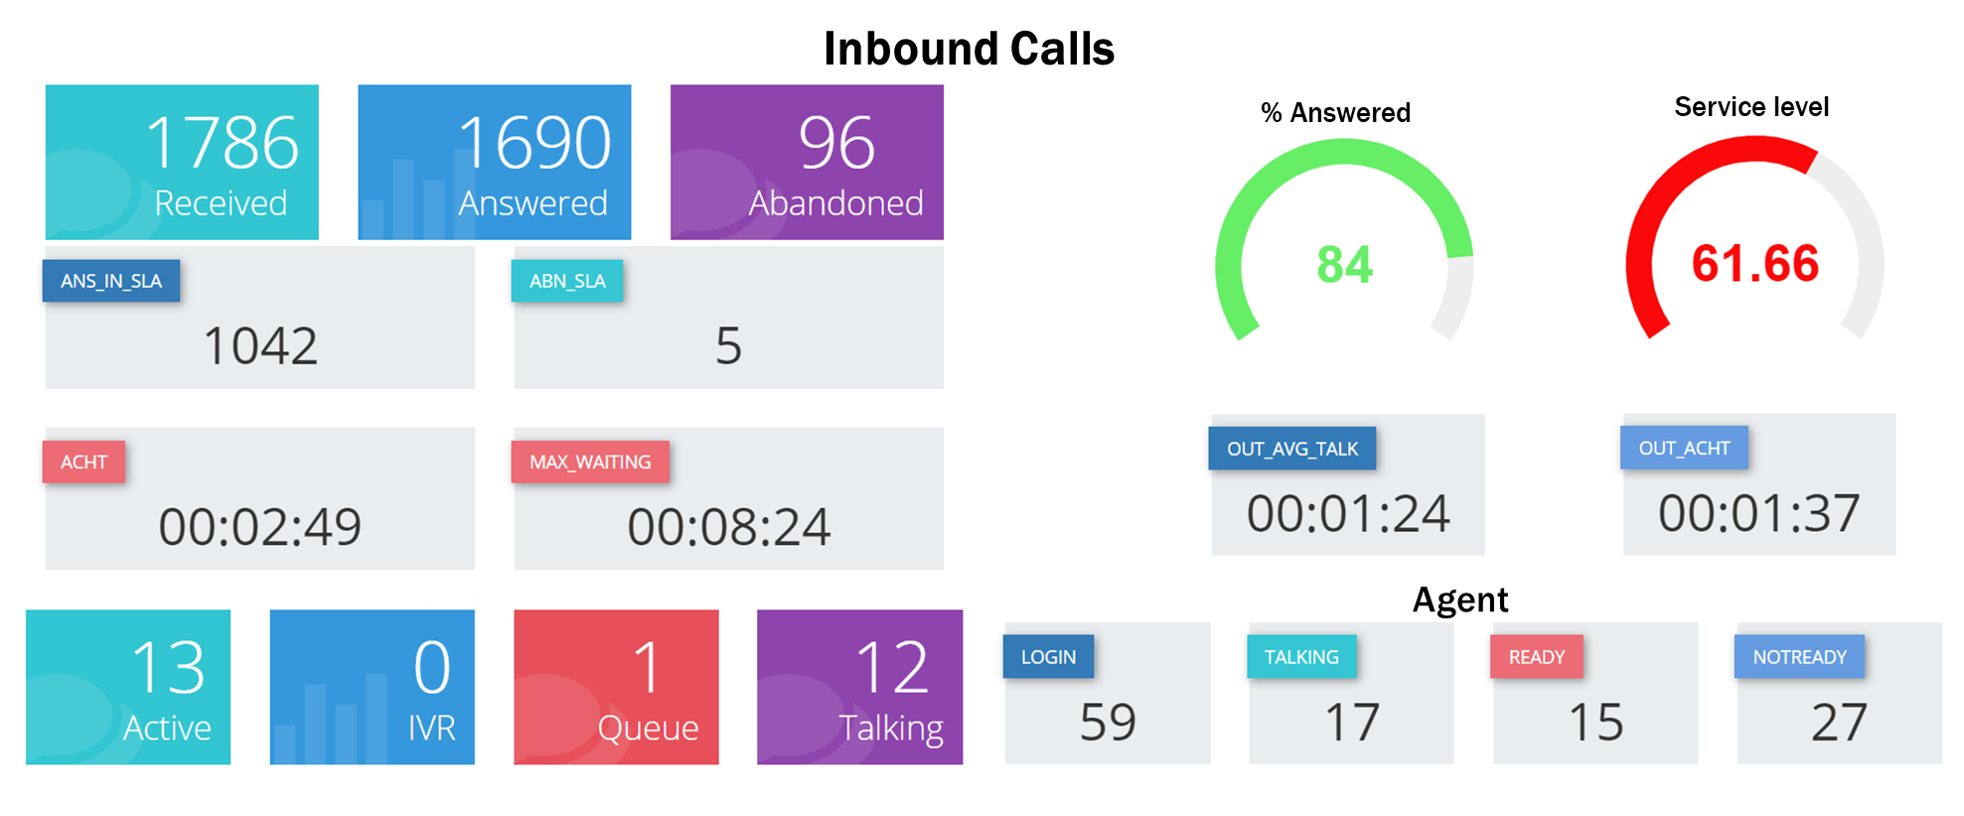 Nixxis Contact Suite dashboards